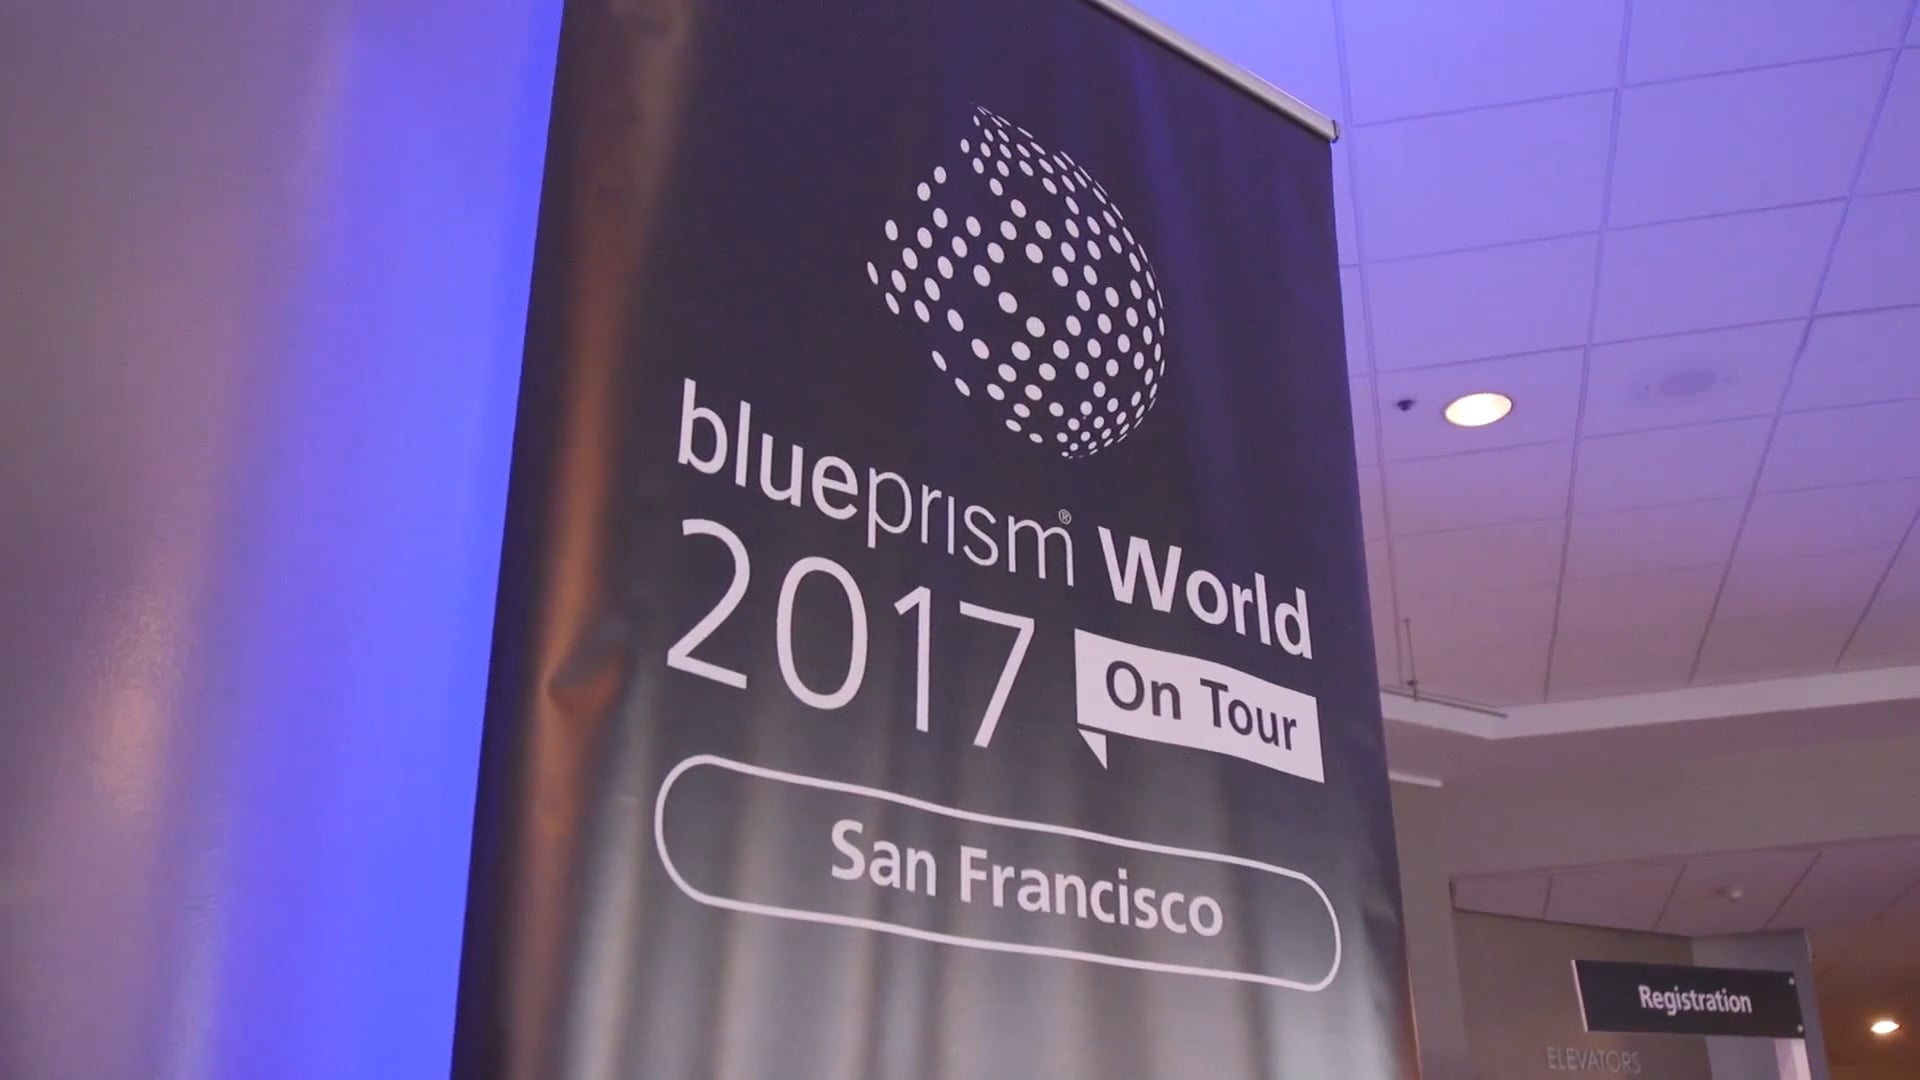 Highlights from Blue Prism World 2017 San Francisco [Full HD 1080p]